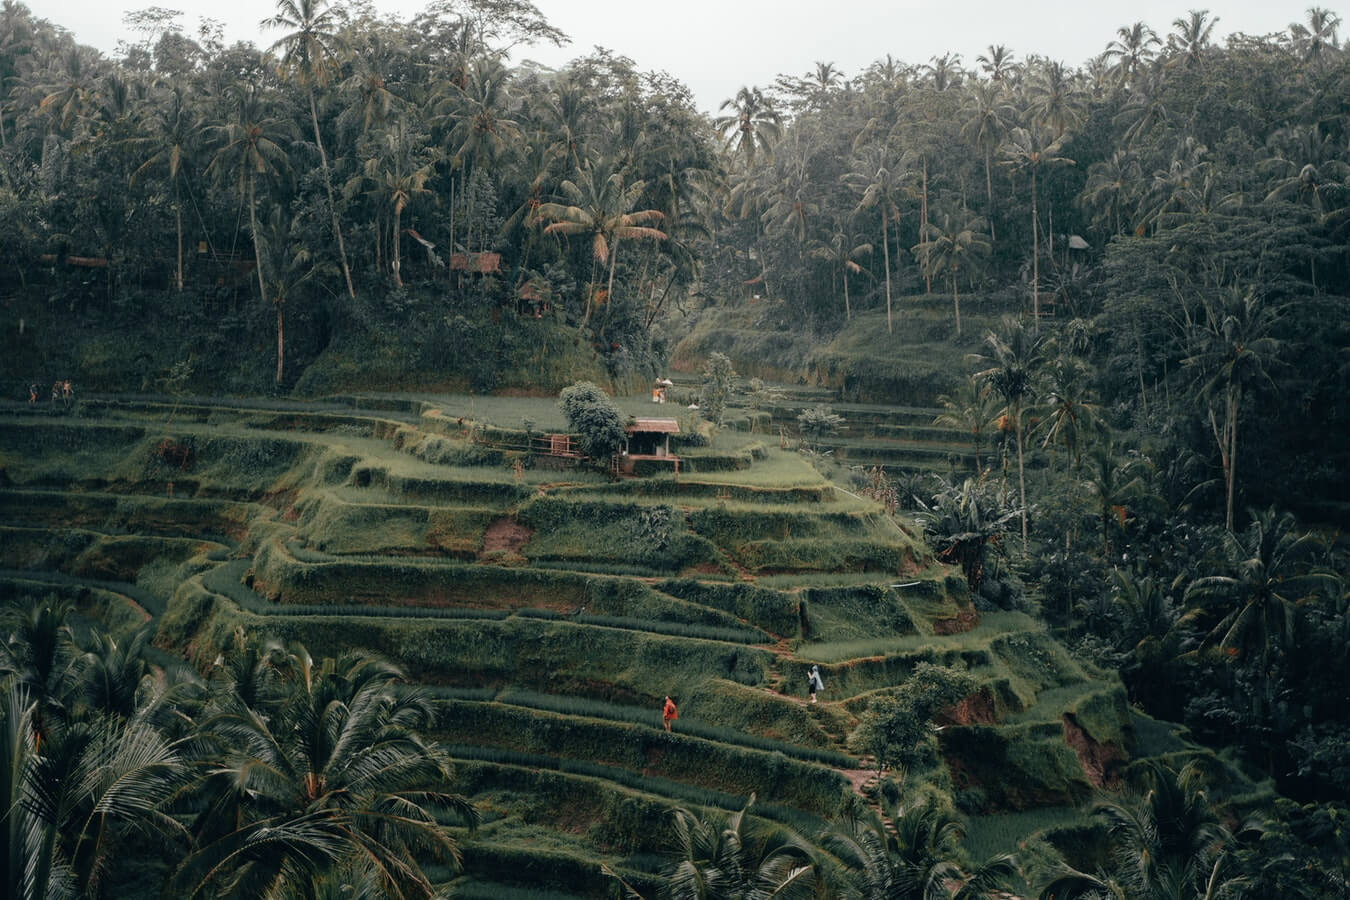 Tegalalang Rice Terrace on a hillside near Ubud in Bali